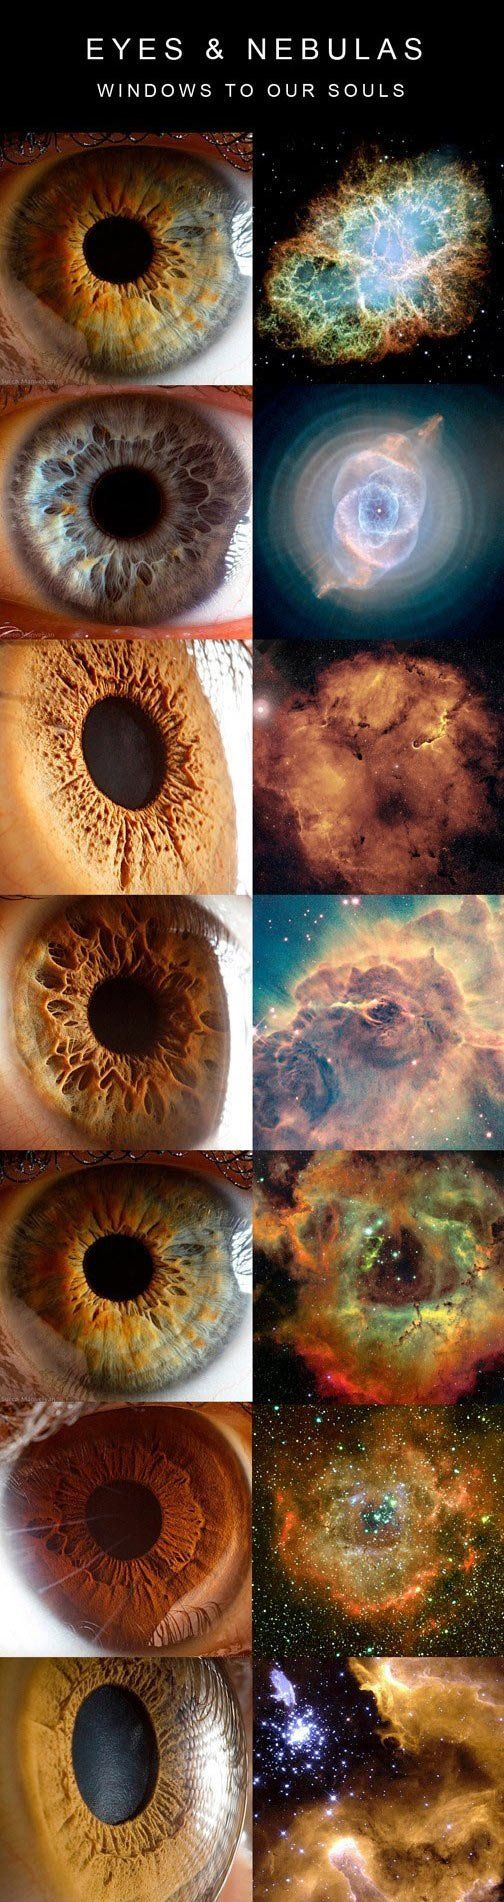 Eyes and nebulas: how strange the resemblance.